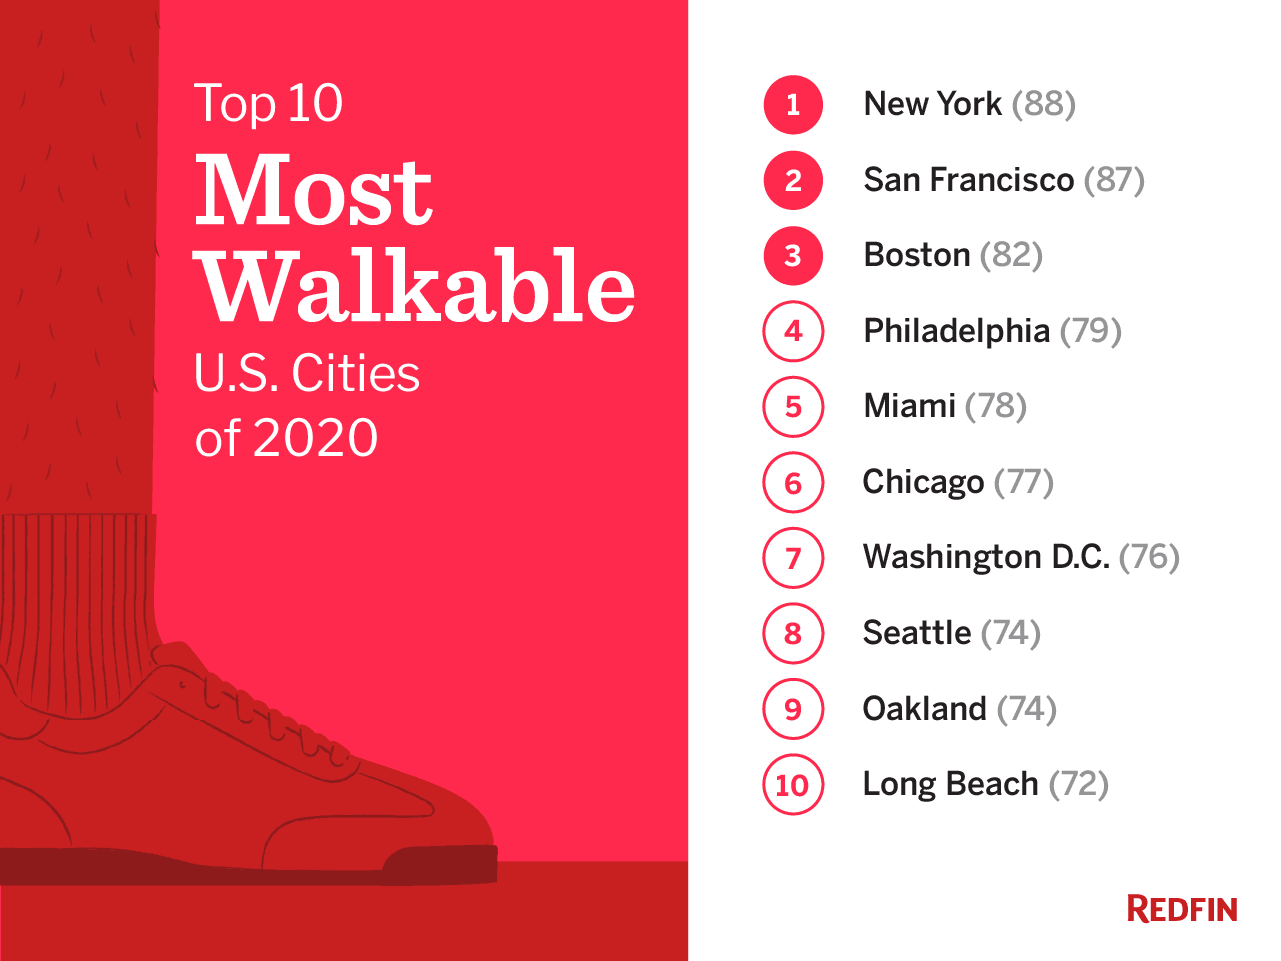 List of most walkable cities in the U.S.